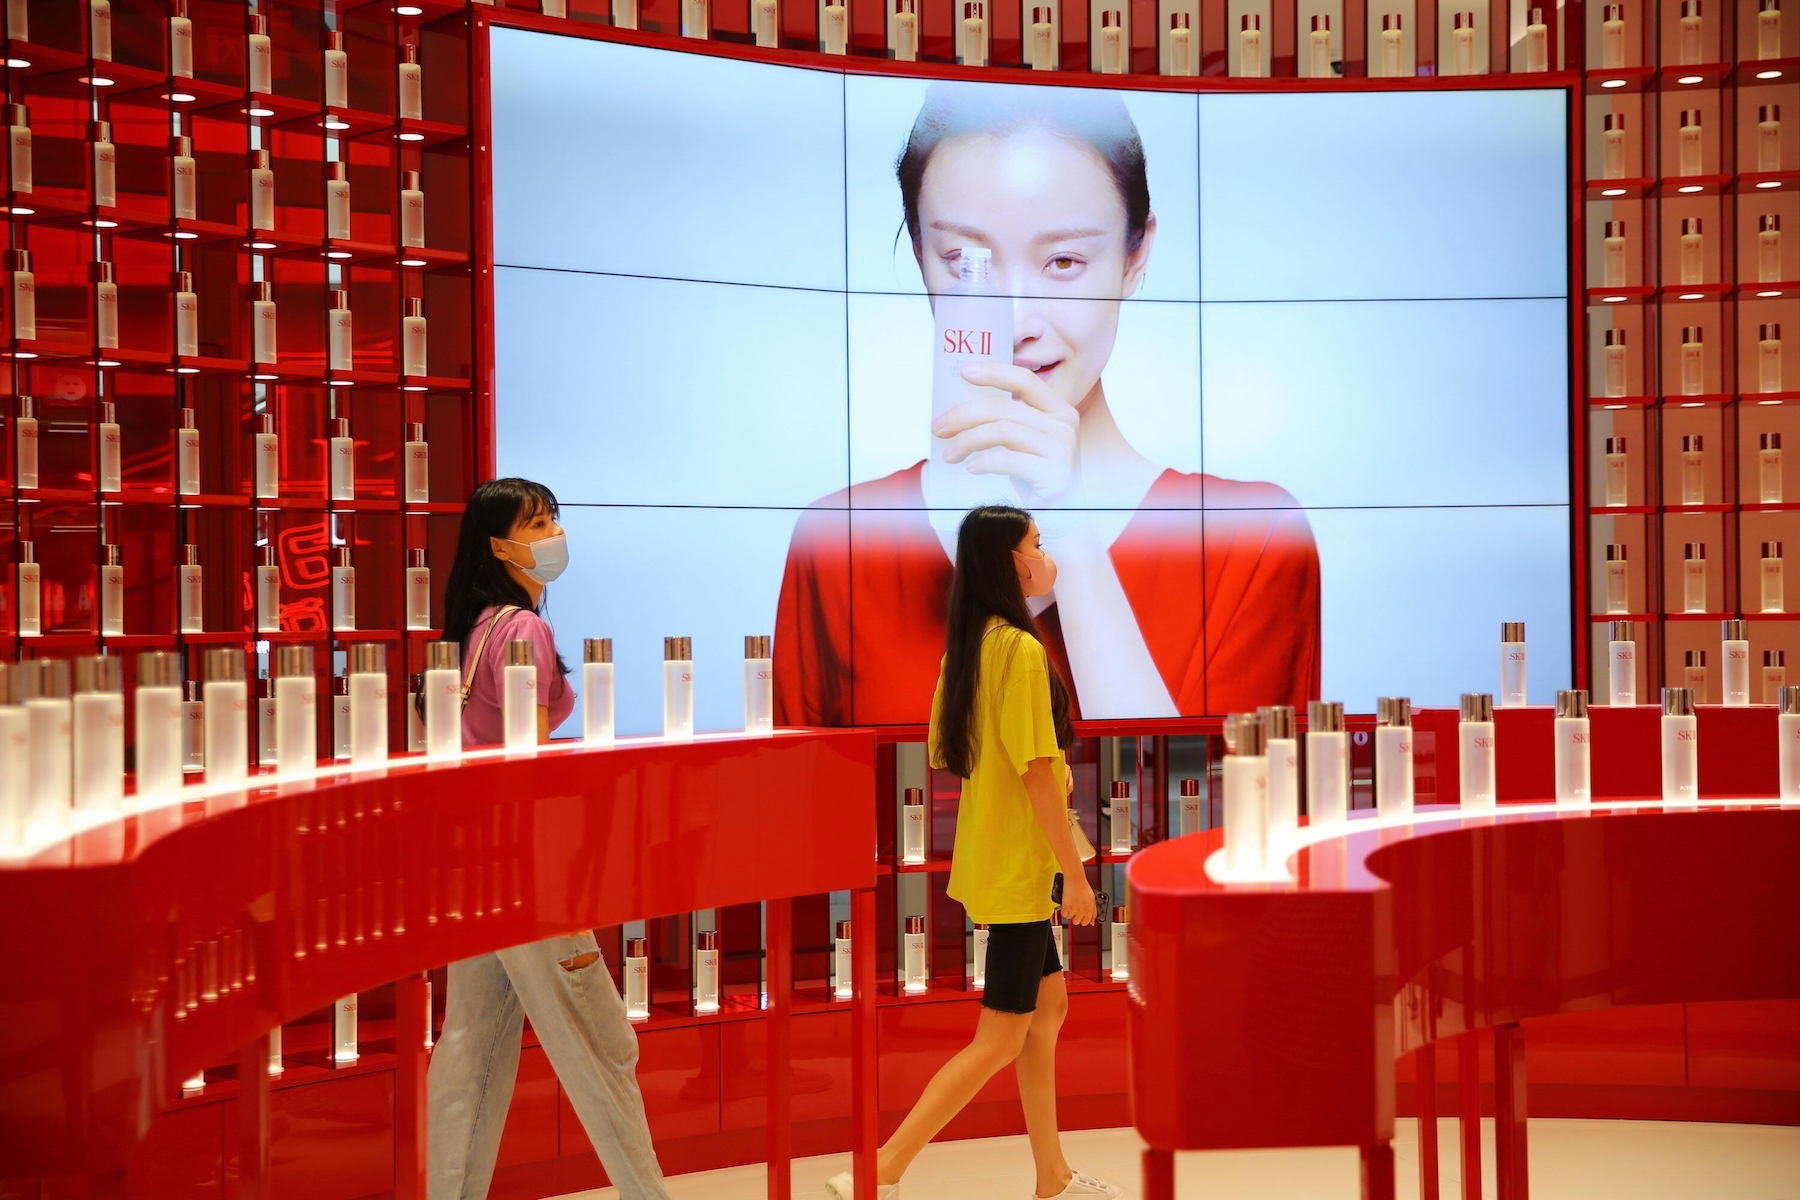 Customers purchase cosmetics at a duty-free shop in the Hainan Province of China. Getty.